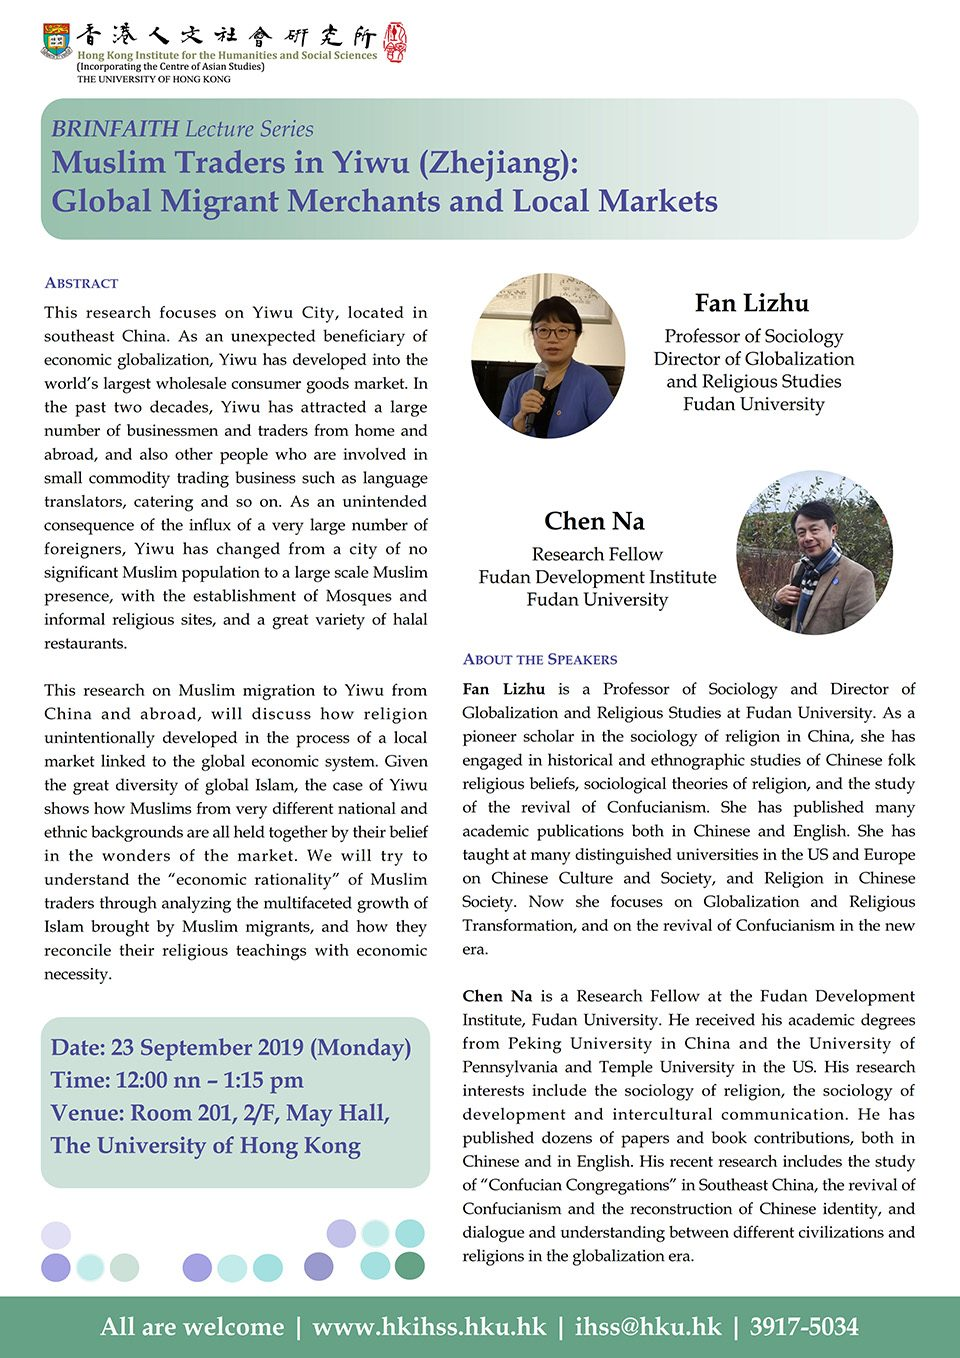 "BRINFAITH Lecture Series on ""Muslim Traders in Yiwu (Zhejiang): Global Migrant Merchants and Local Markets"" by Professor Fan Lizhu and Professor Chen Na (September 23, 2019)"